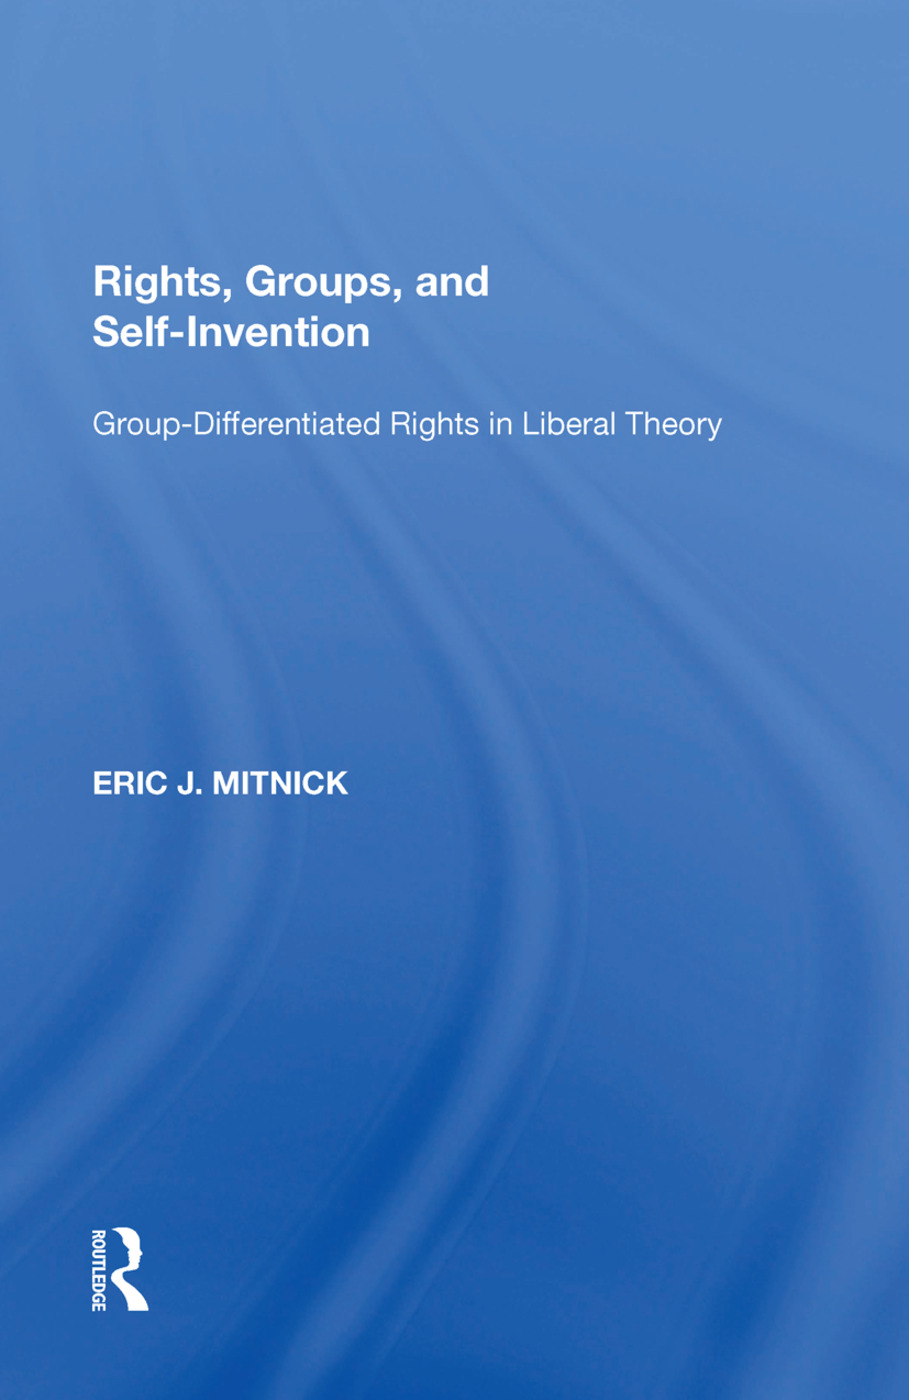 Rights, Groups, and Self-Invention: Group-Differentiated Rights in Liberal Theory, 1st Edition (Paperback) book cover